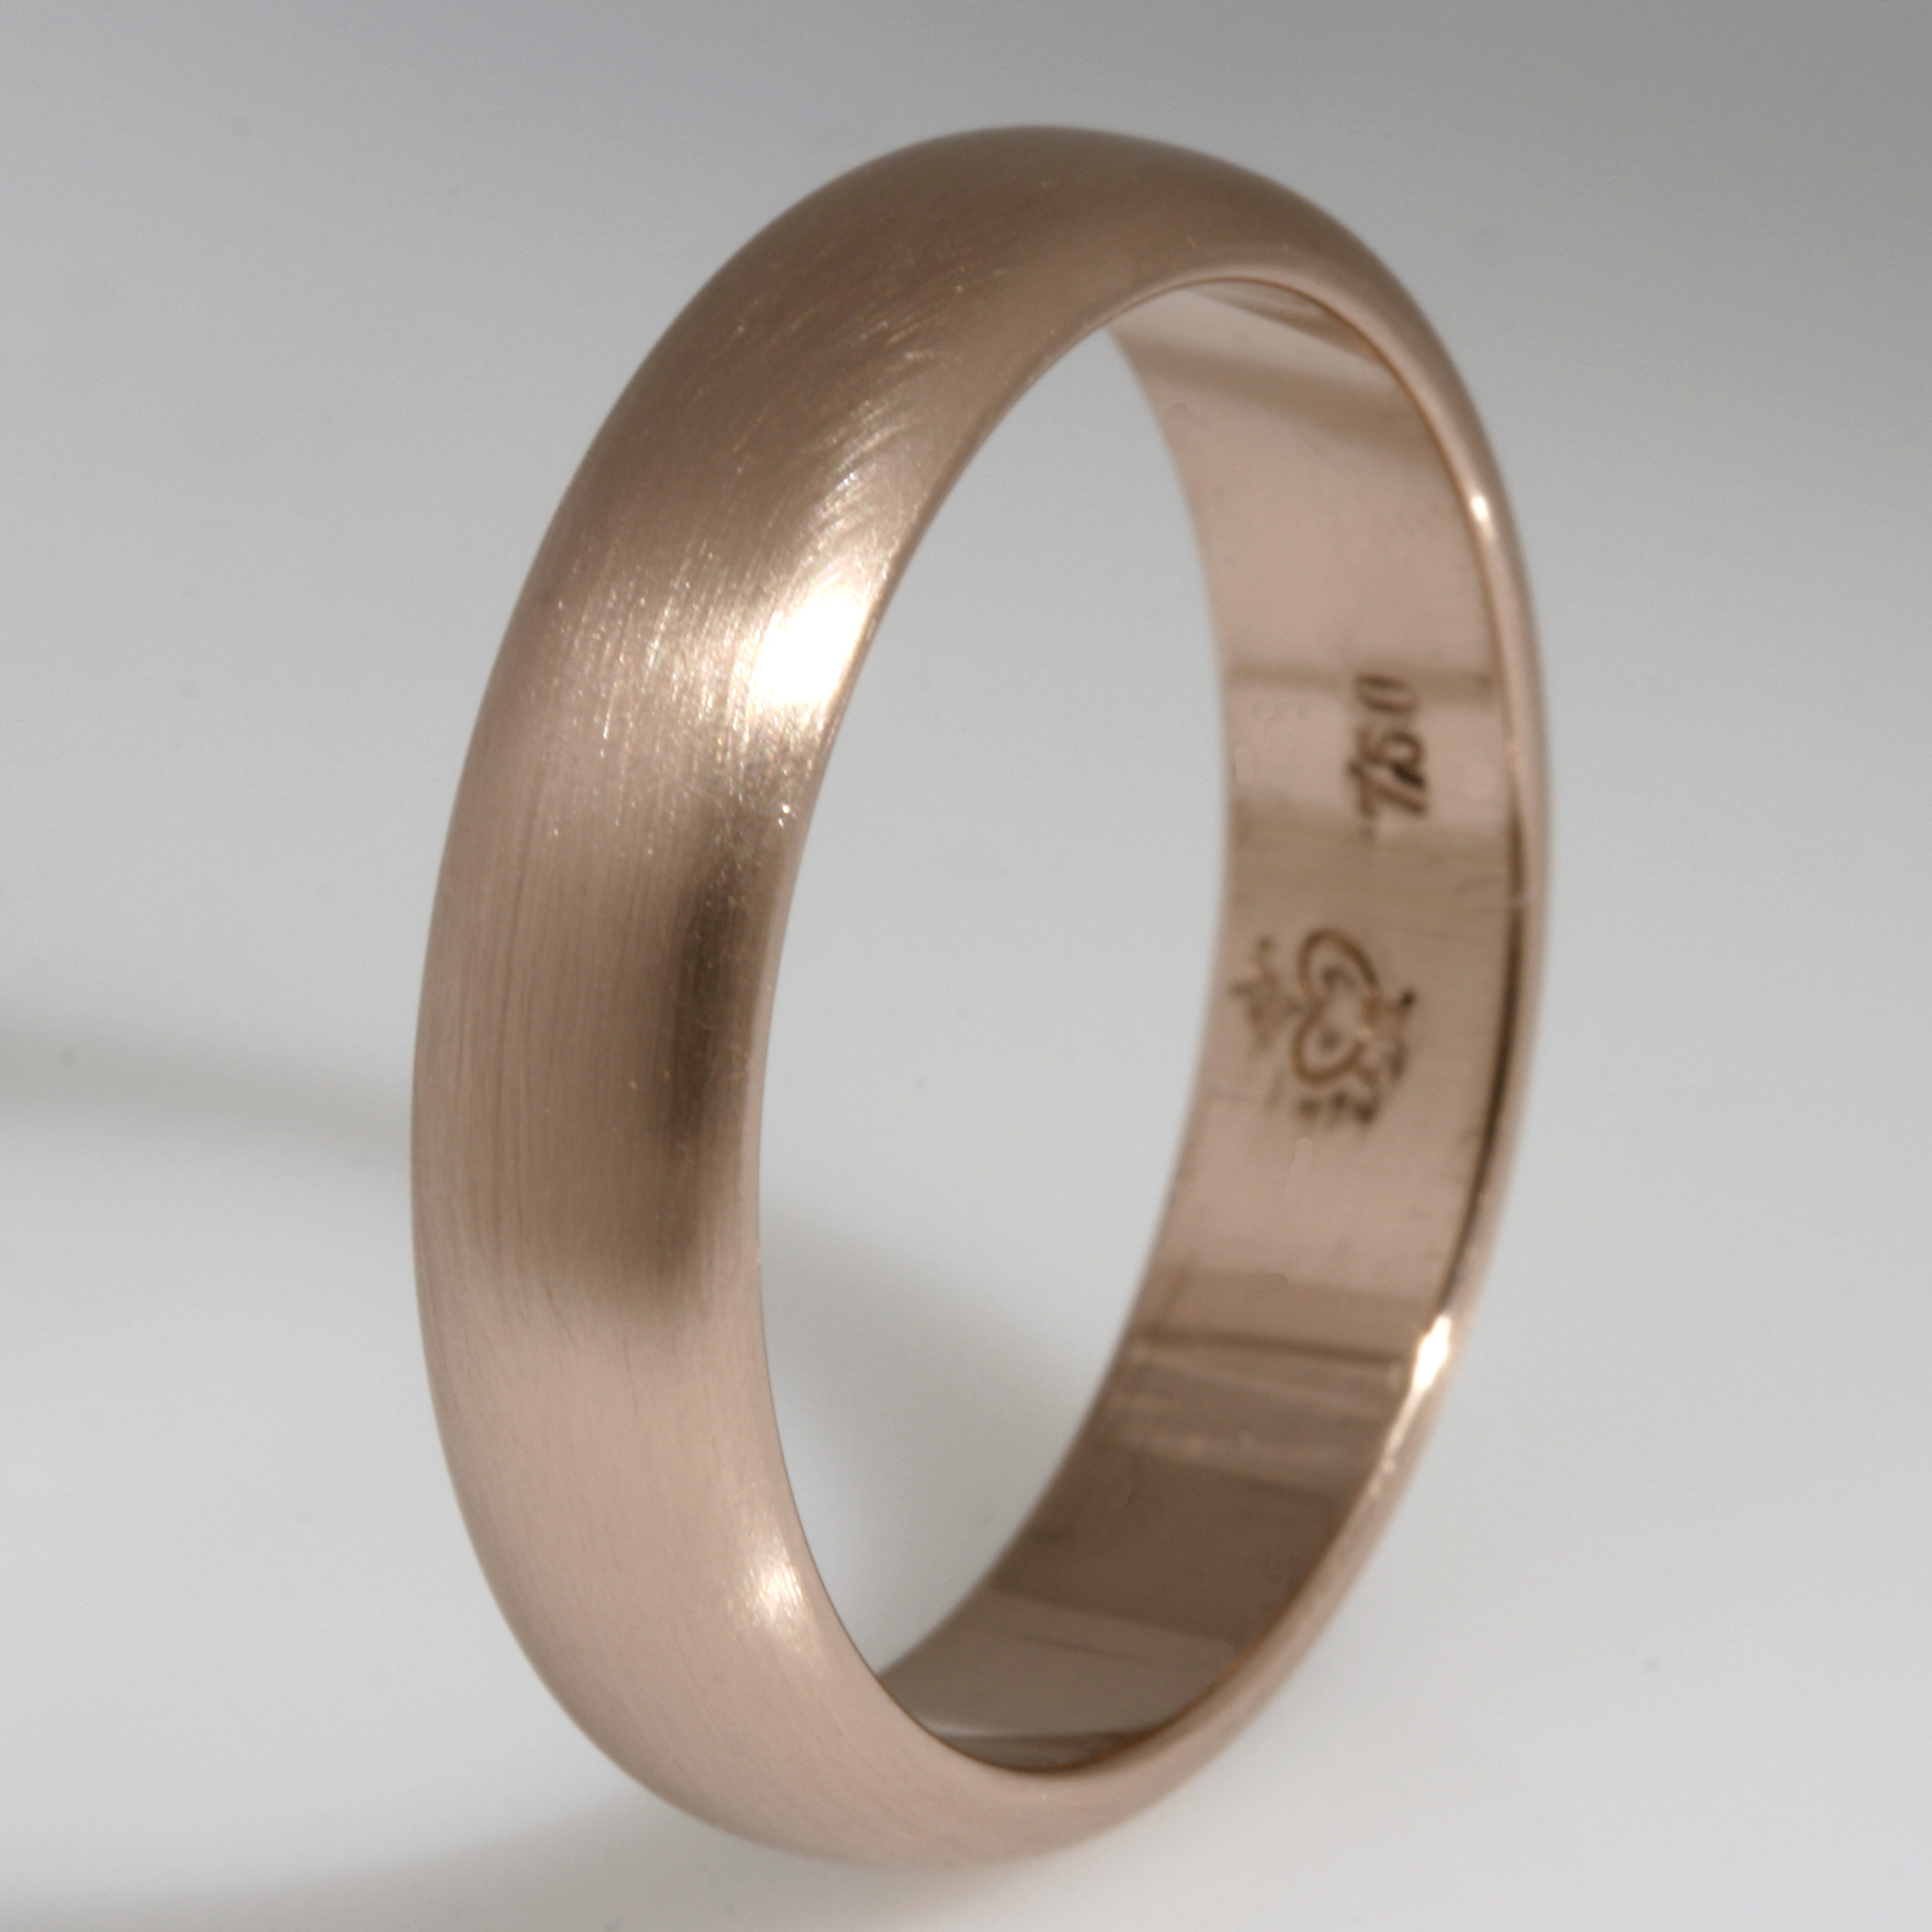 Handmade gents 18ct rose gold wedding ring